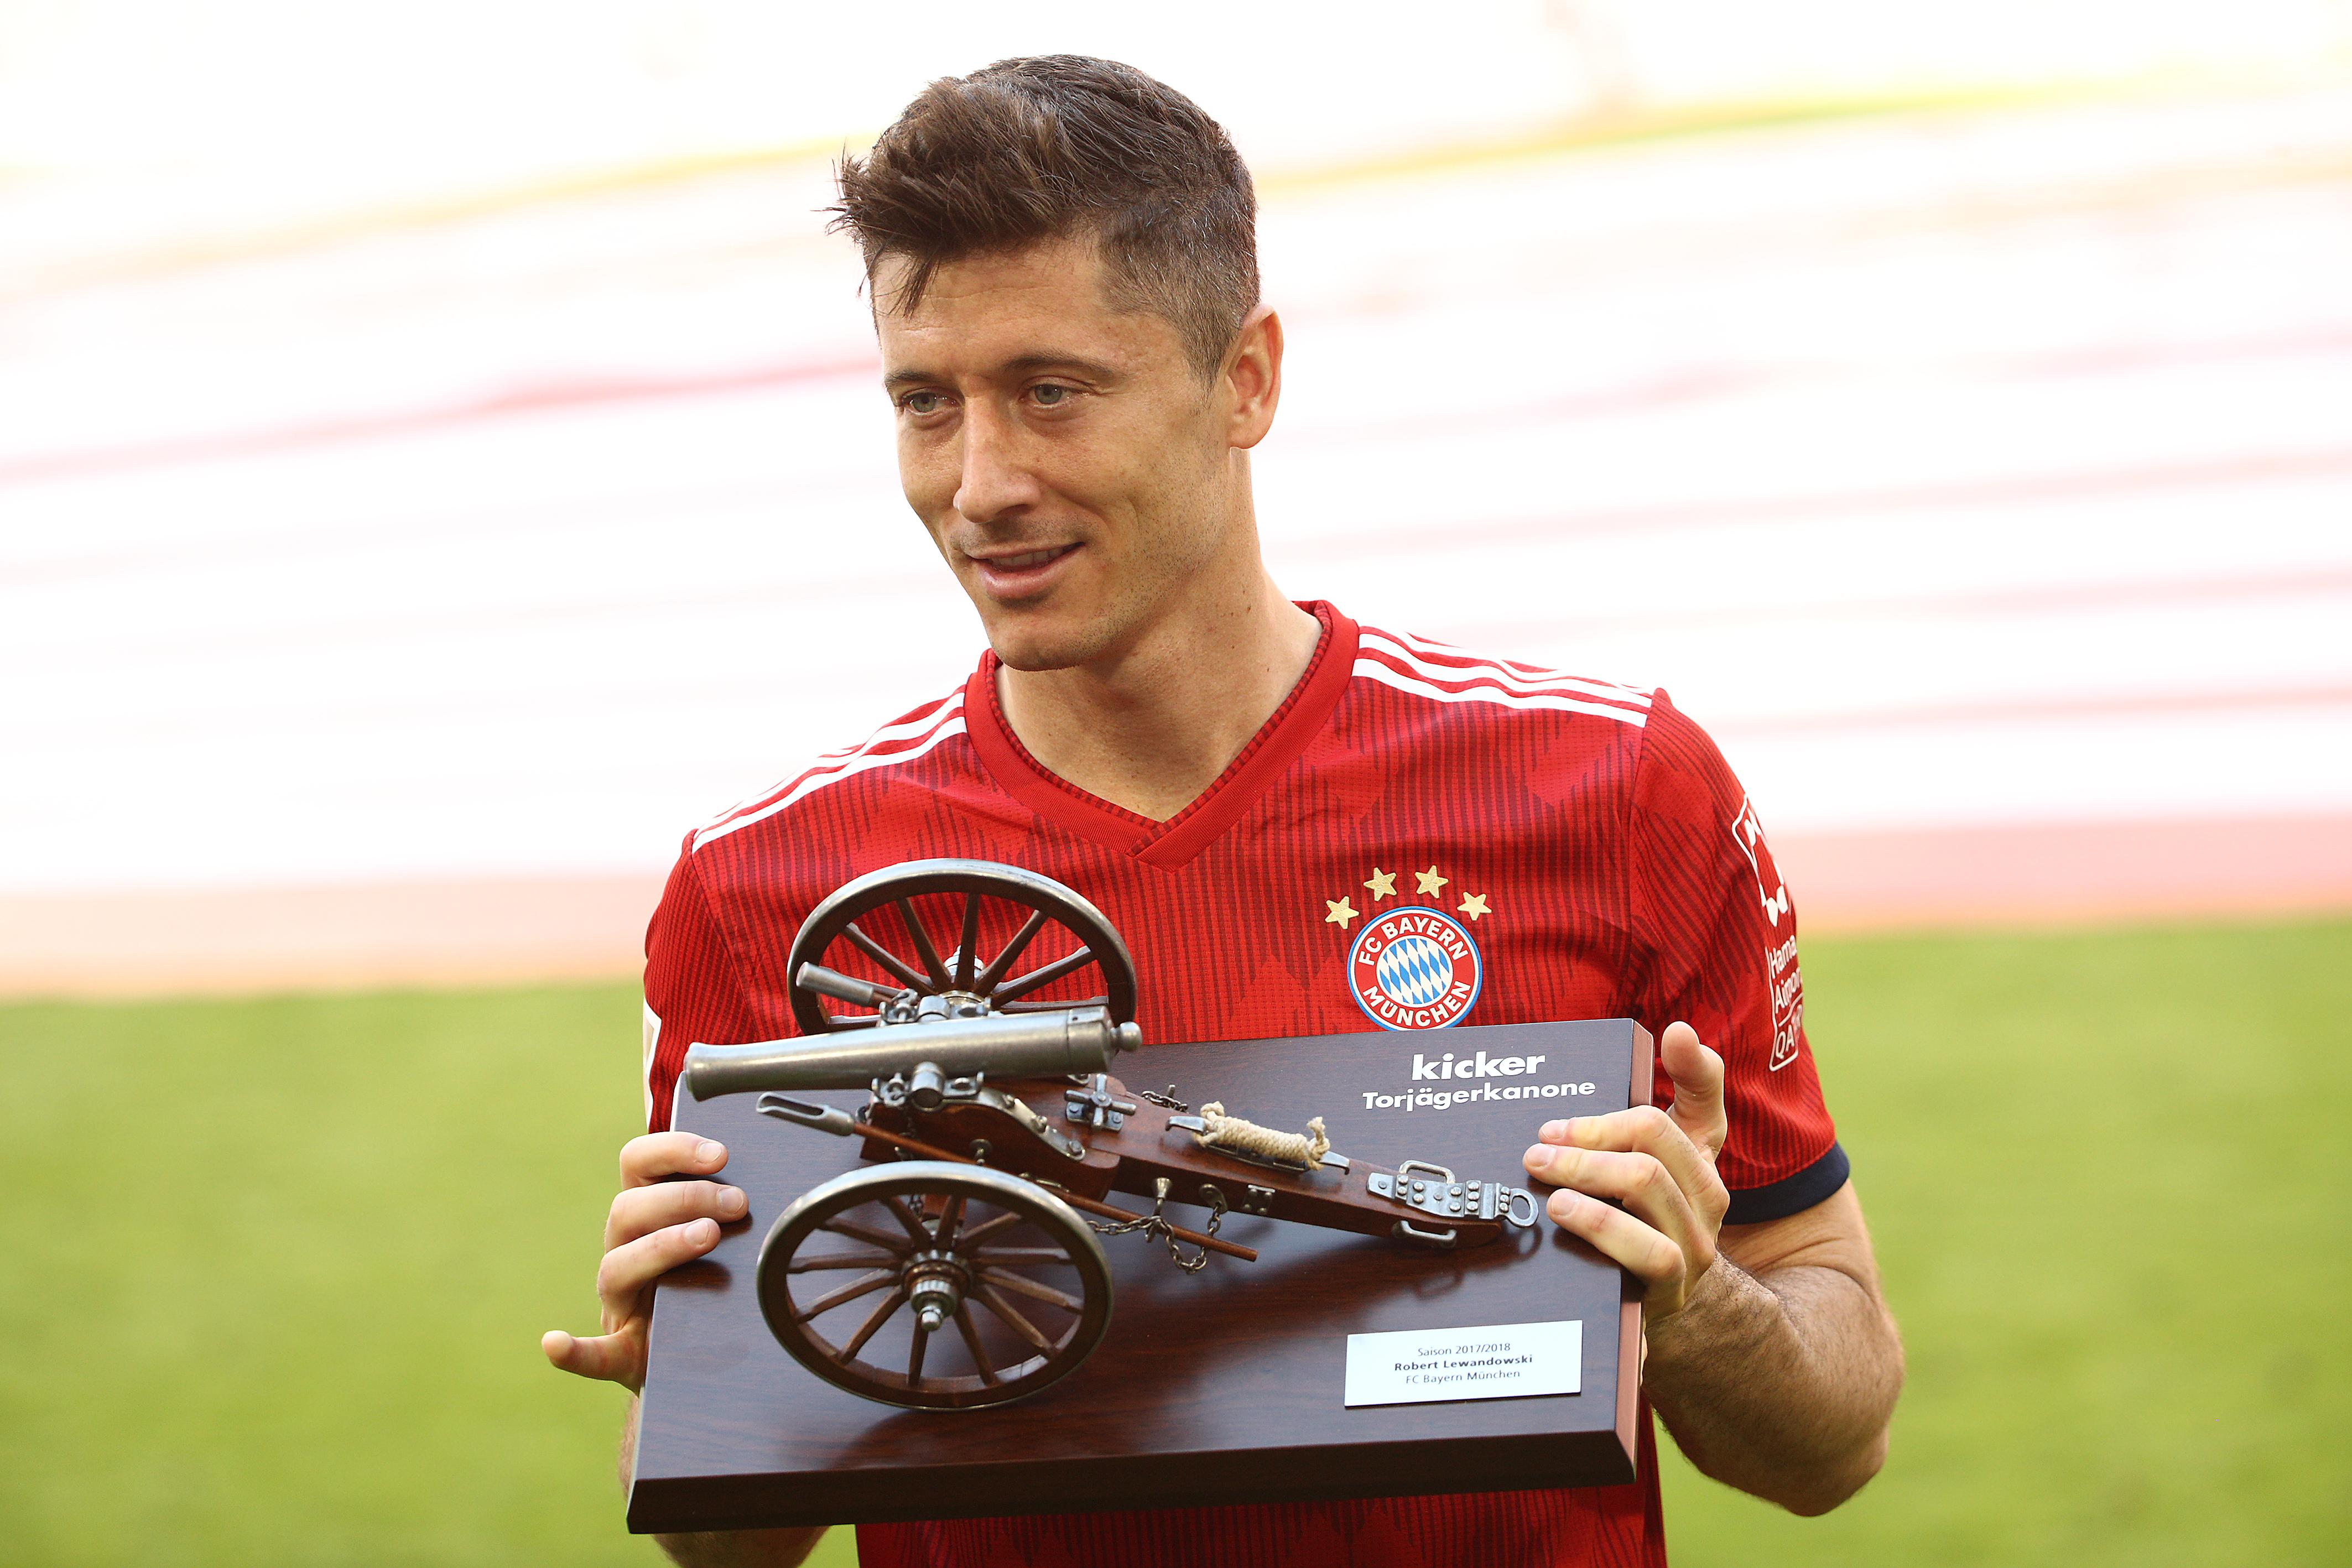 Robert Lewandowski has gone to become one of the world's best strikers